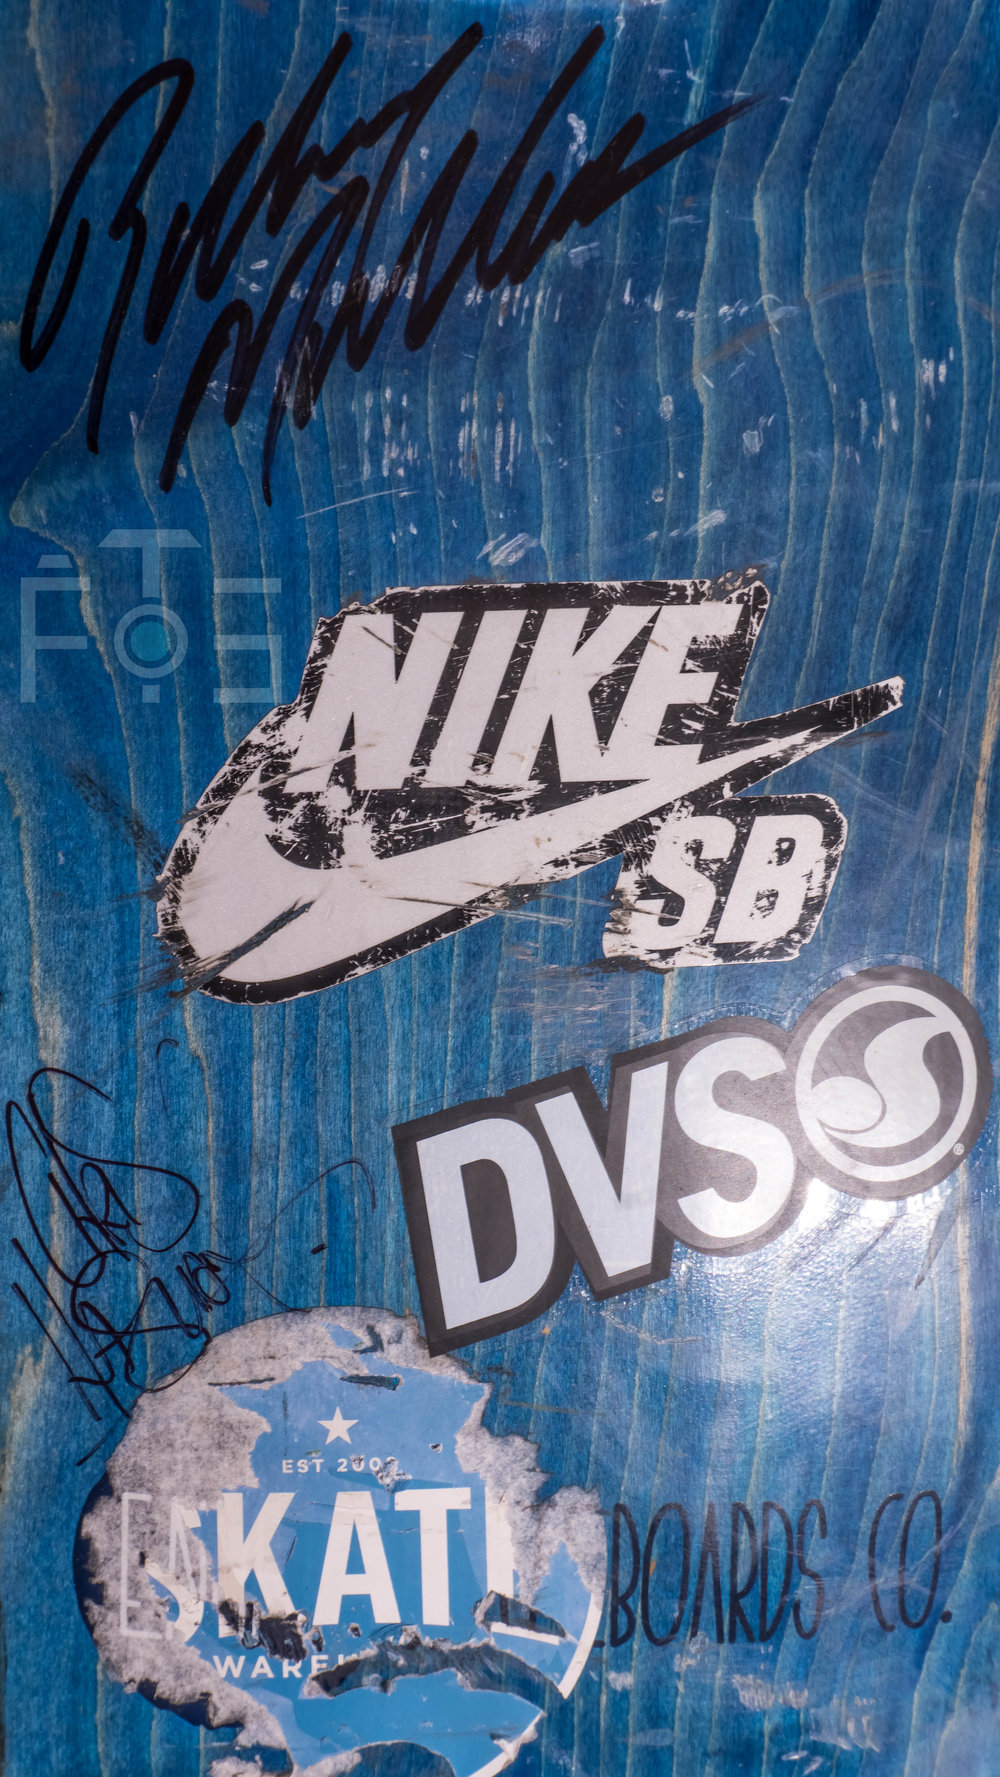 Rodney Mullen's and Chris Haslam's autographs on my board.  10 secs, f16.0, ISO 100.